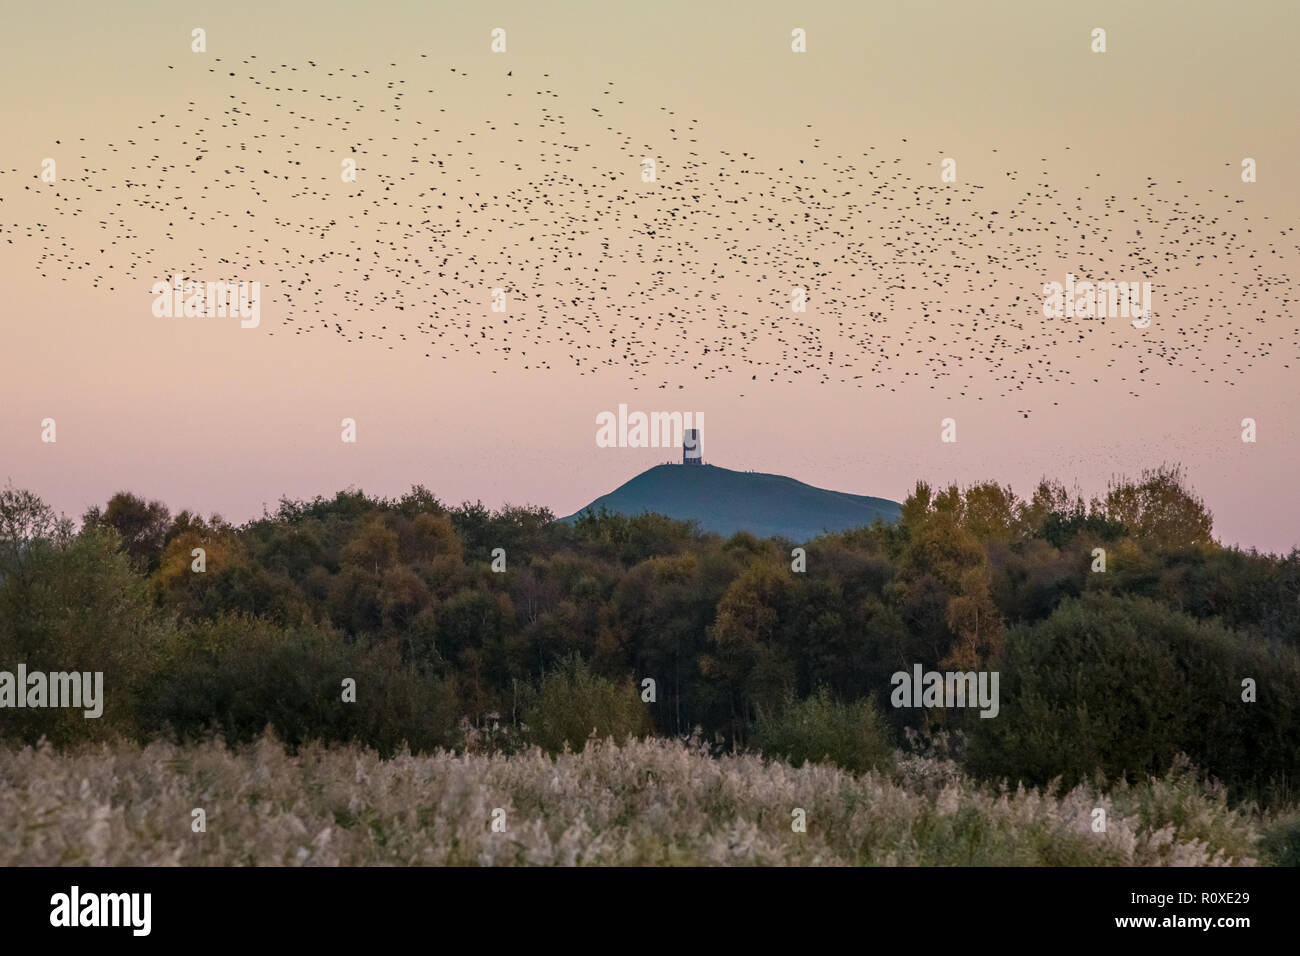 Evening starling murmuration in Glastonbury, Somerset, UK - Stock Image